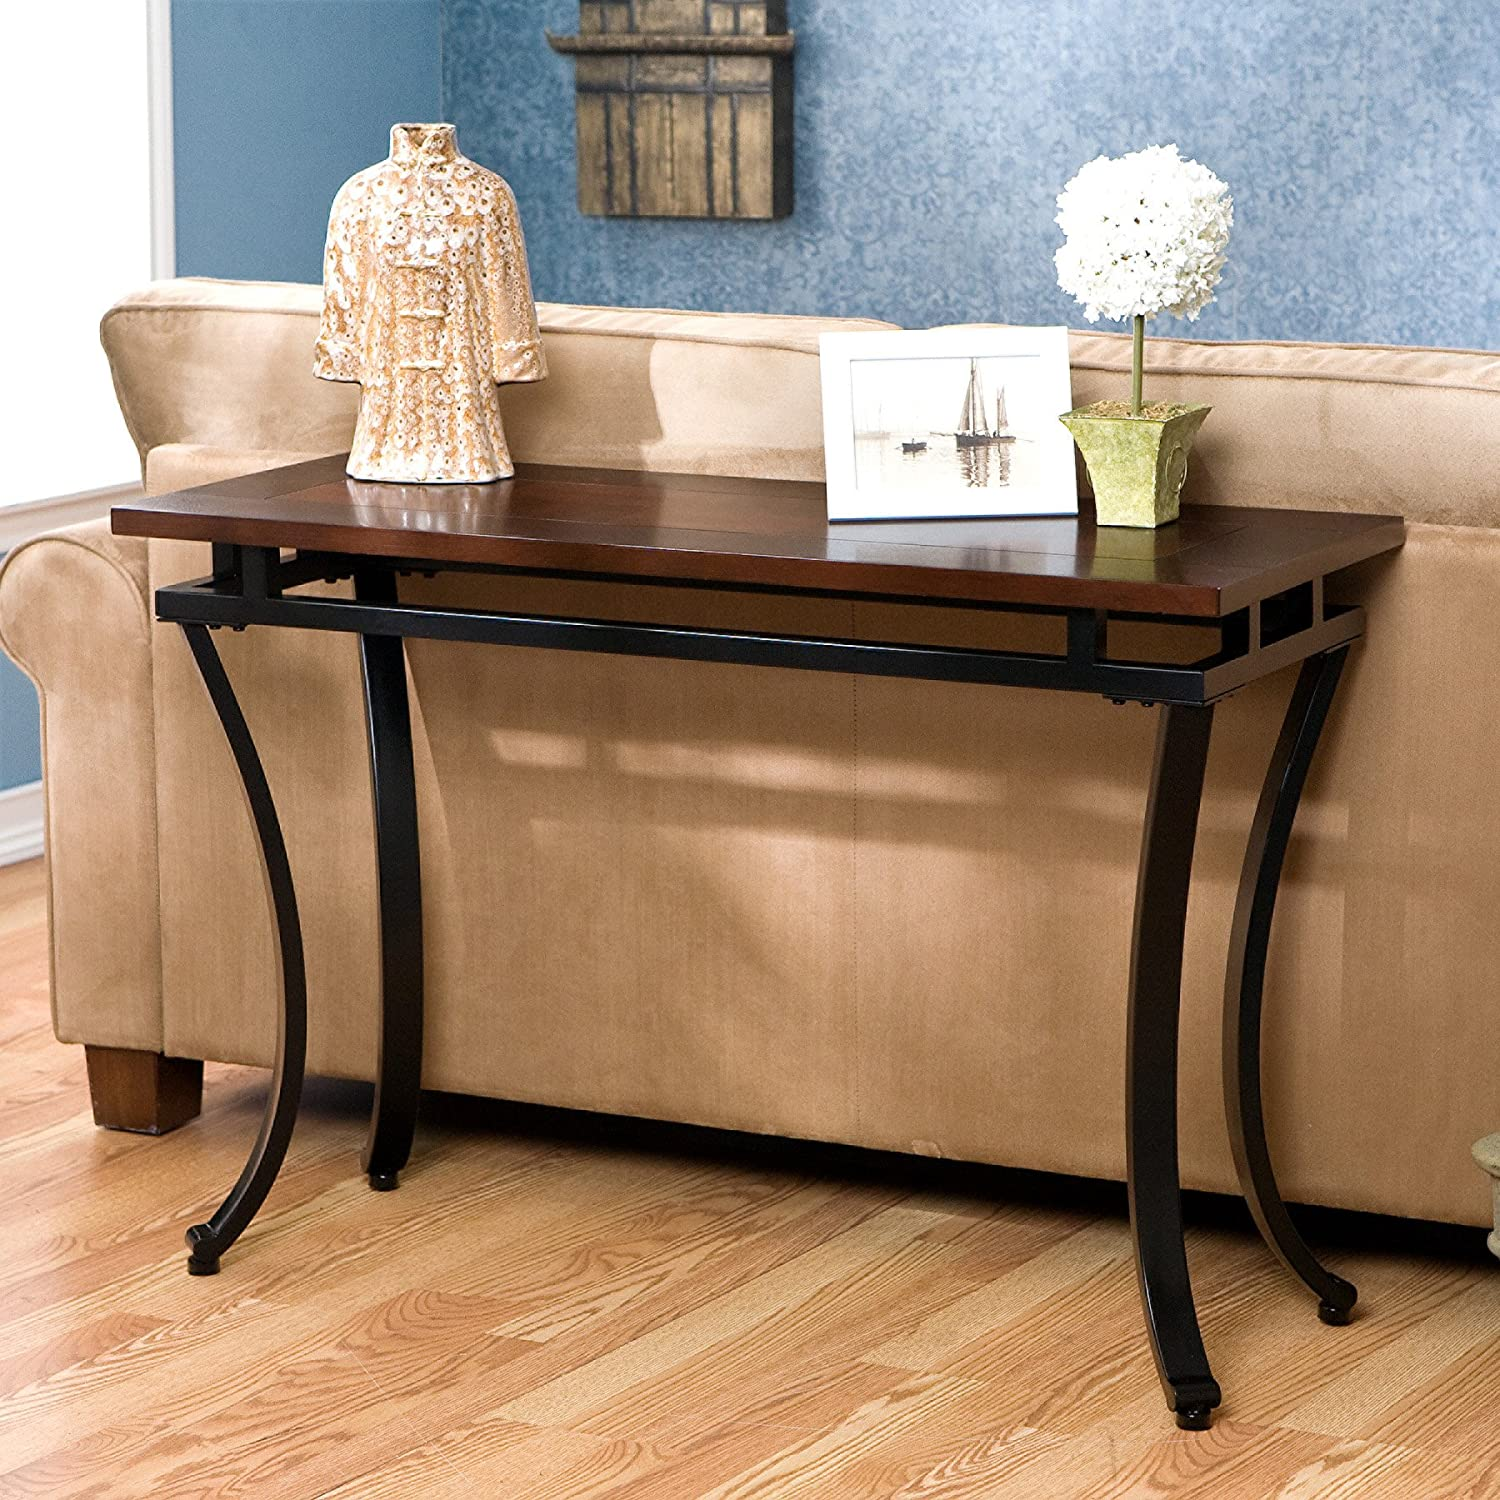 Amazon southern enterprises modesto sofa console table amazon southern enterprises modesto sofa console table espresso finish kitchen dining geotapseo Gallery